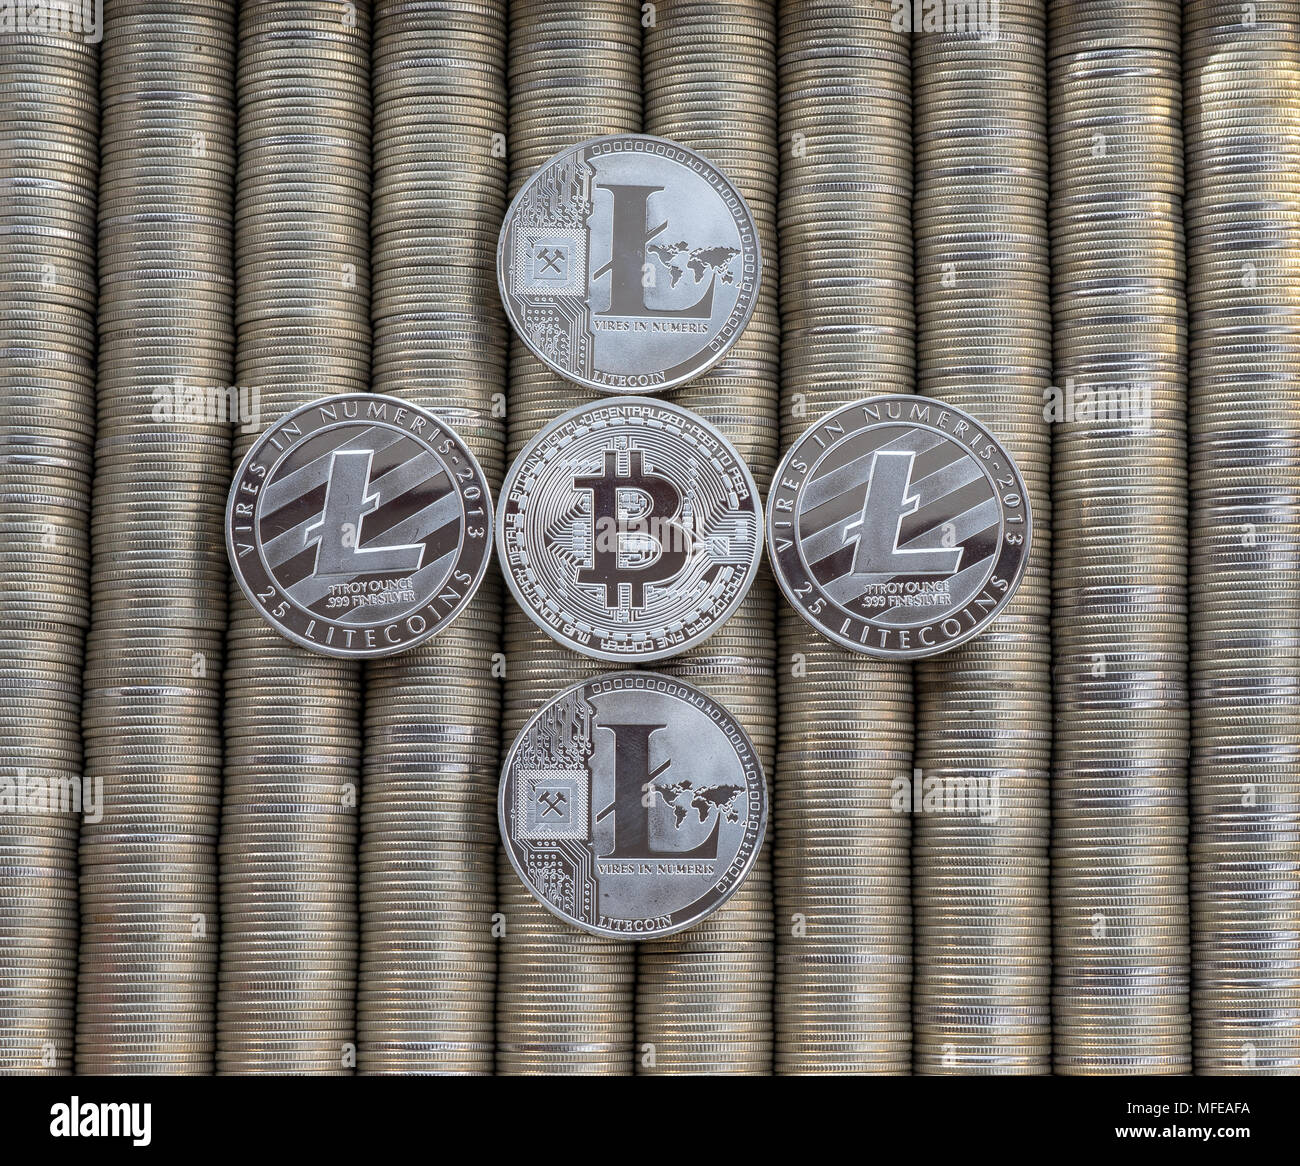 Silver Crypto coins bitcoin BTC Litecoin LTC. Metal coins are laid out in a smooth background each other, close-up view from top, crypto currency exch - Stock Image